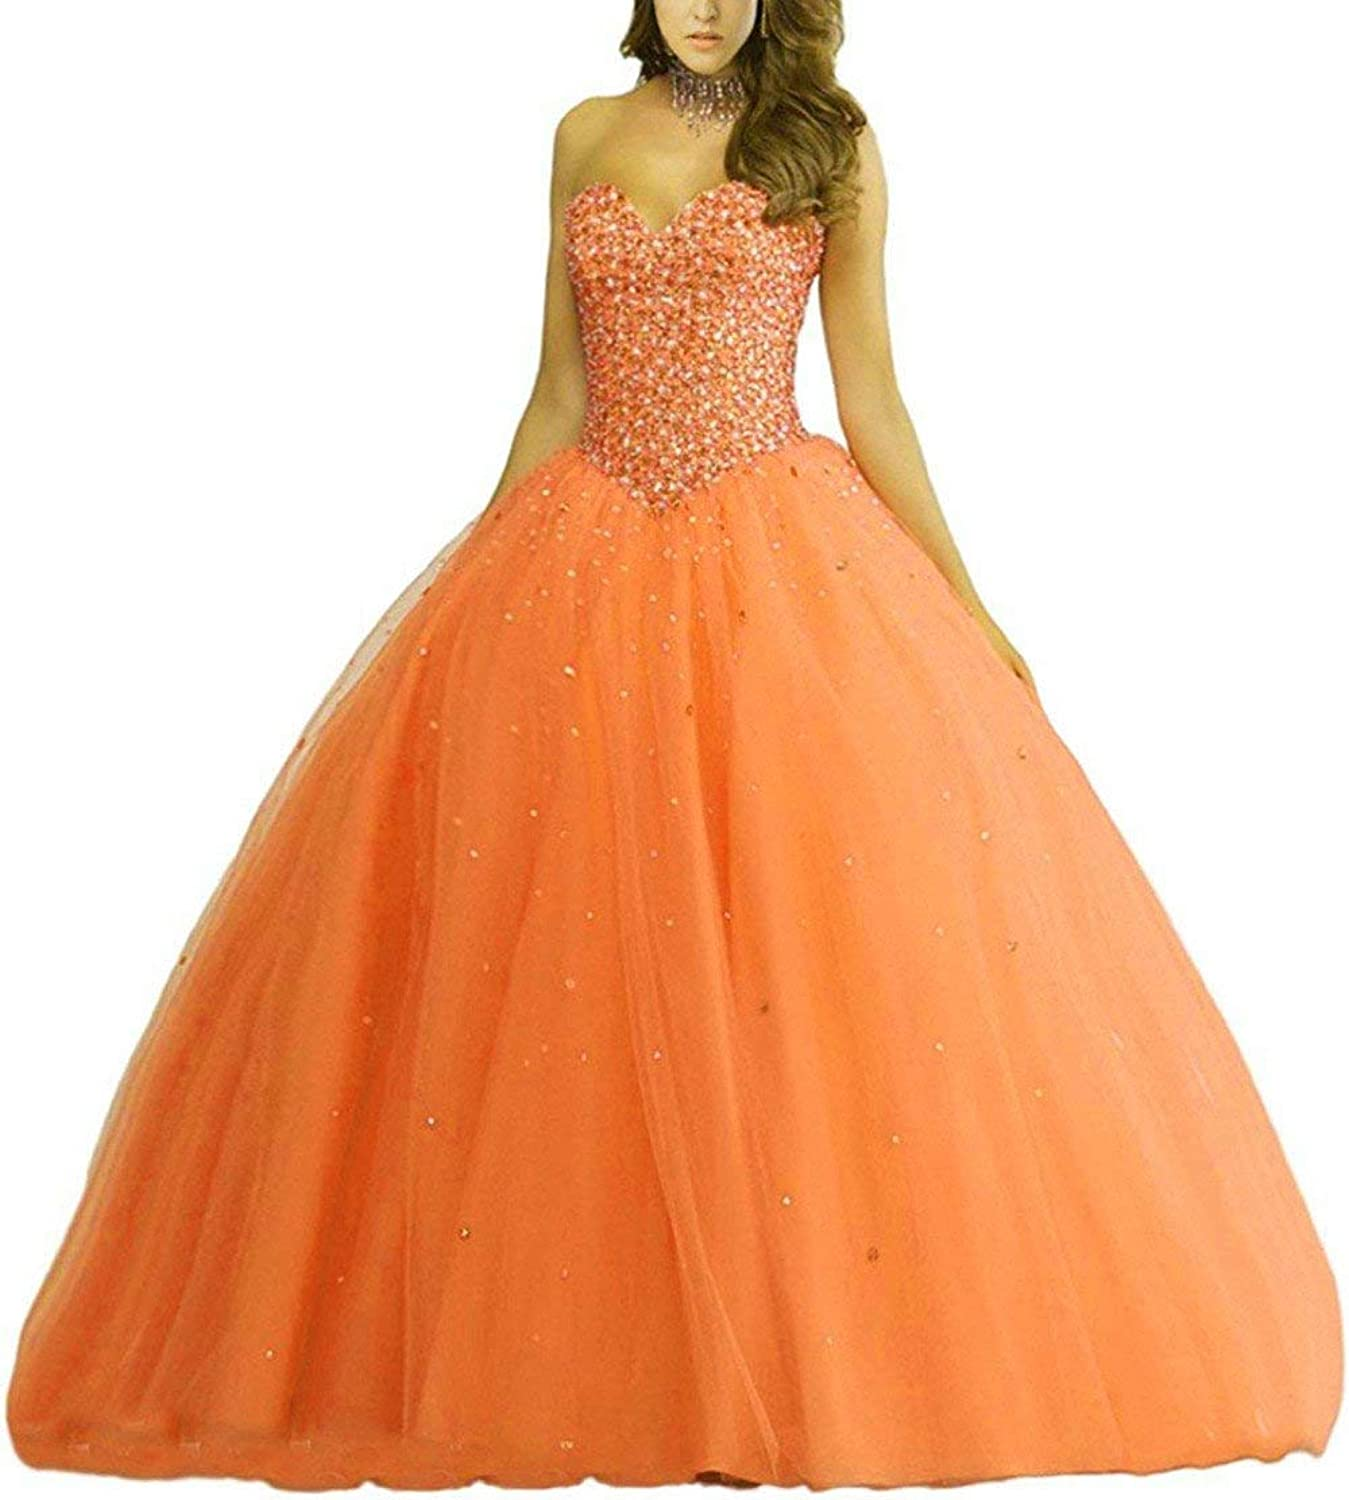 Vantexi Women's Sweetheart Beading Tulle Quinceanera Dresses Formal Evening Prom Gowns